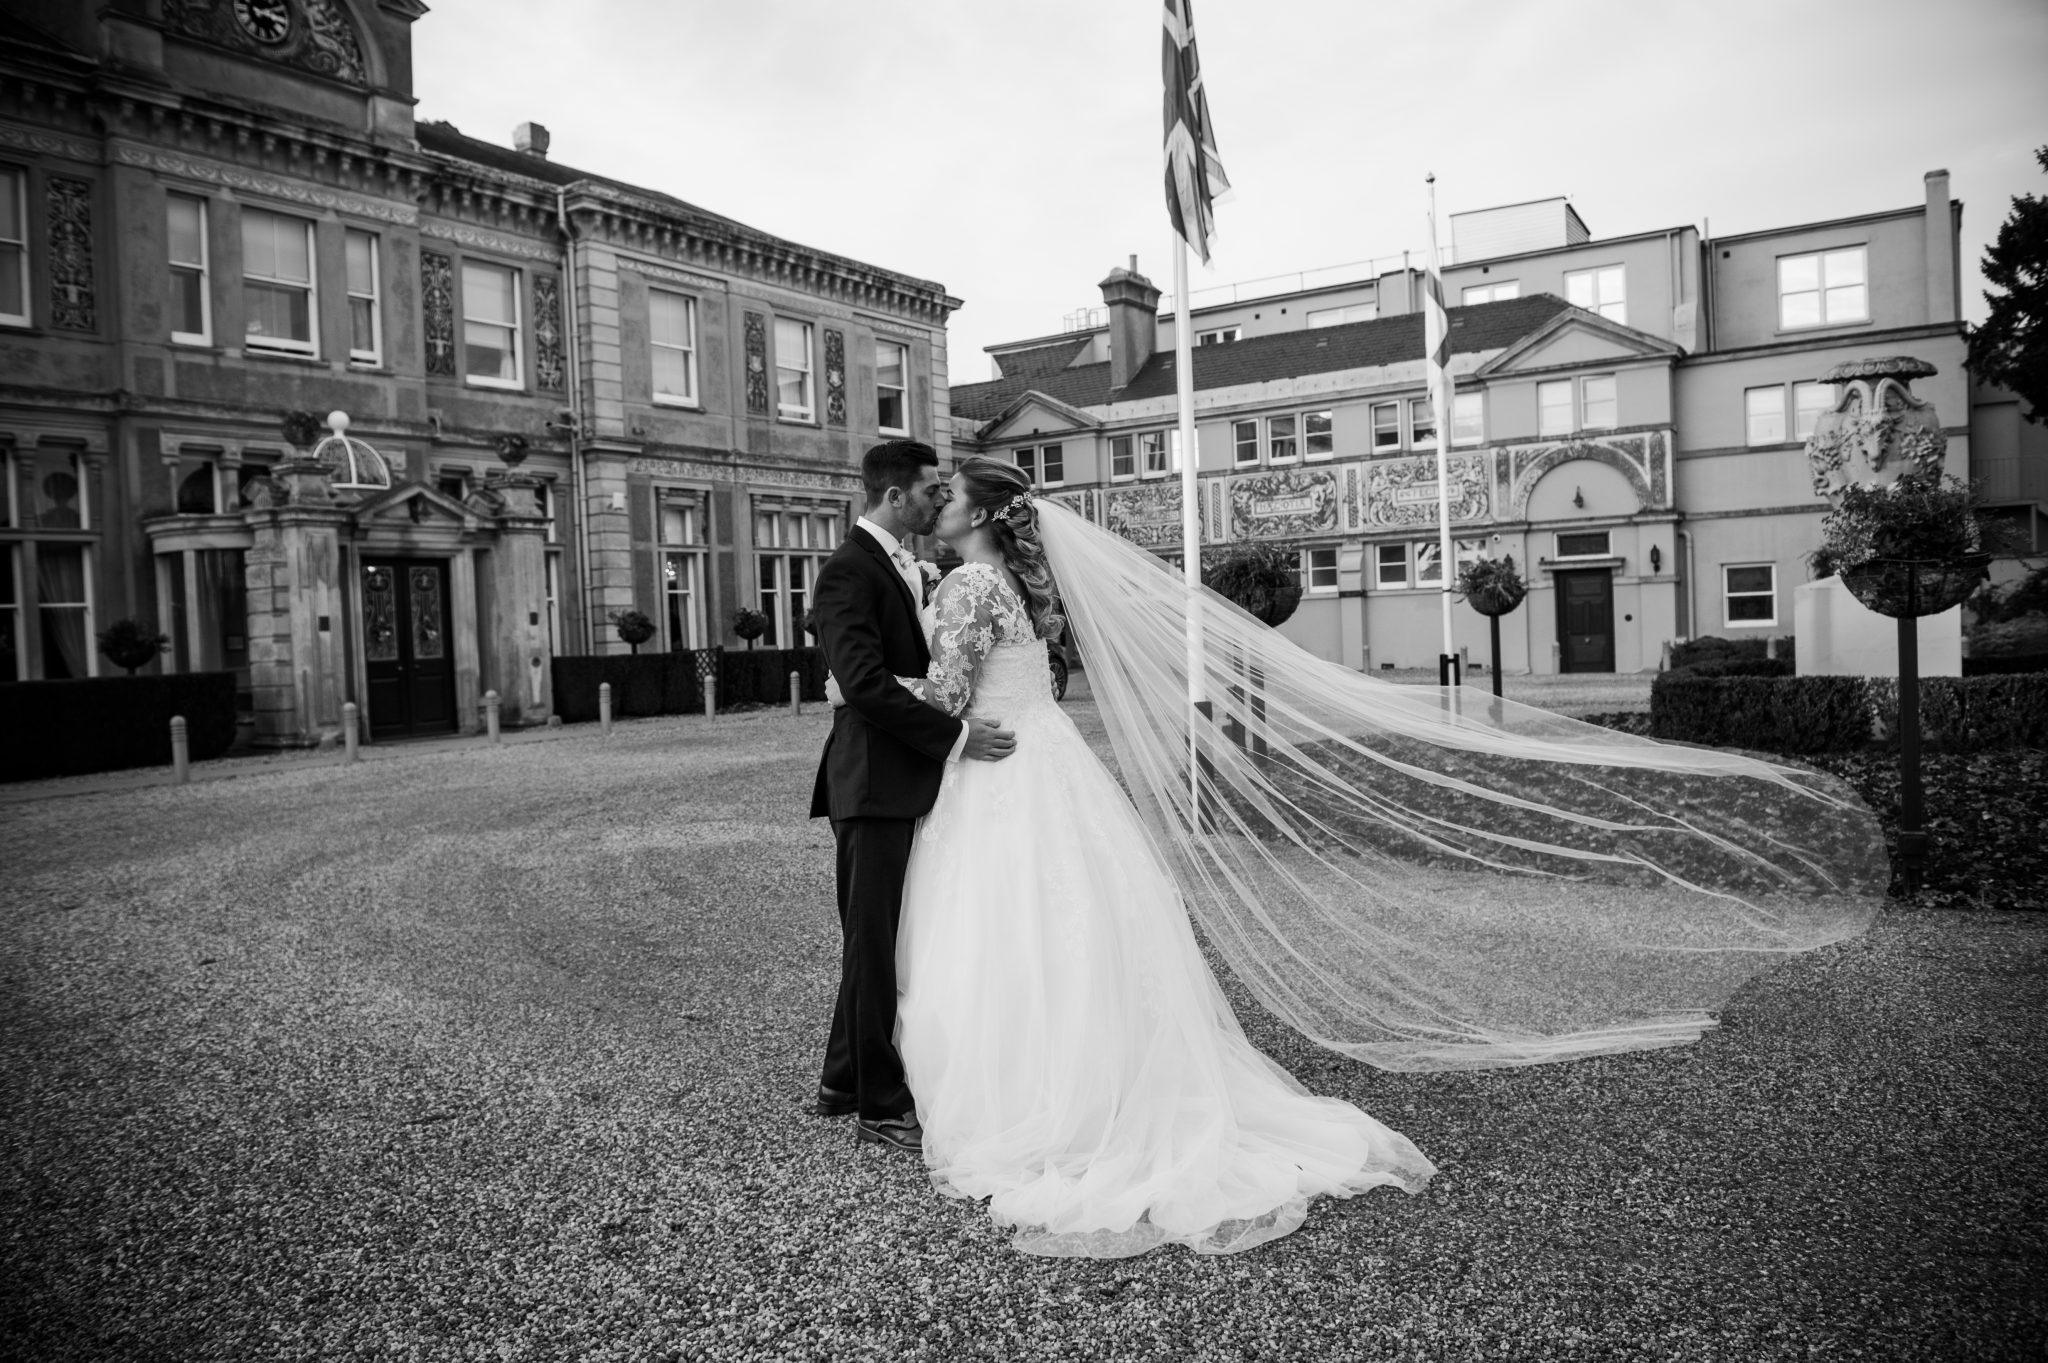 Rhiannon and Ryans Wedding Photographs at Down Hall